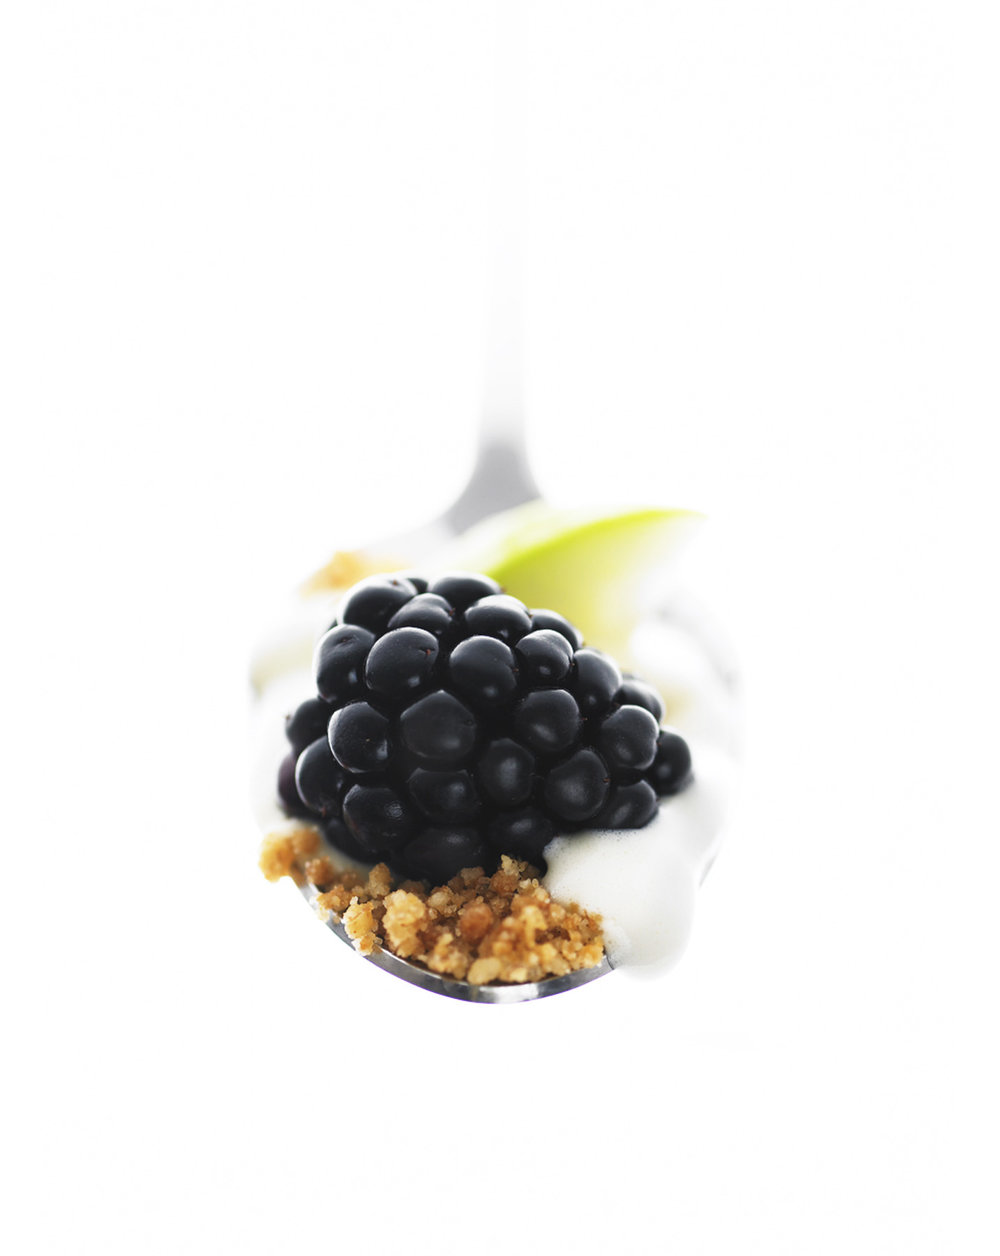 22-icon-artist-management-katie-hammond-food-waitrose_blackcurrant_spoon.jpg